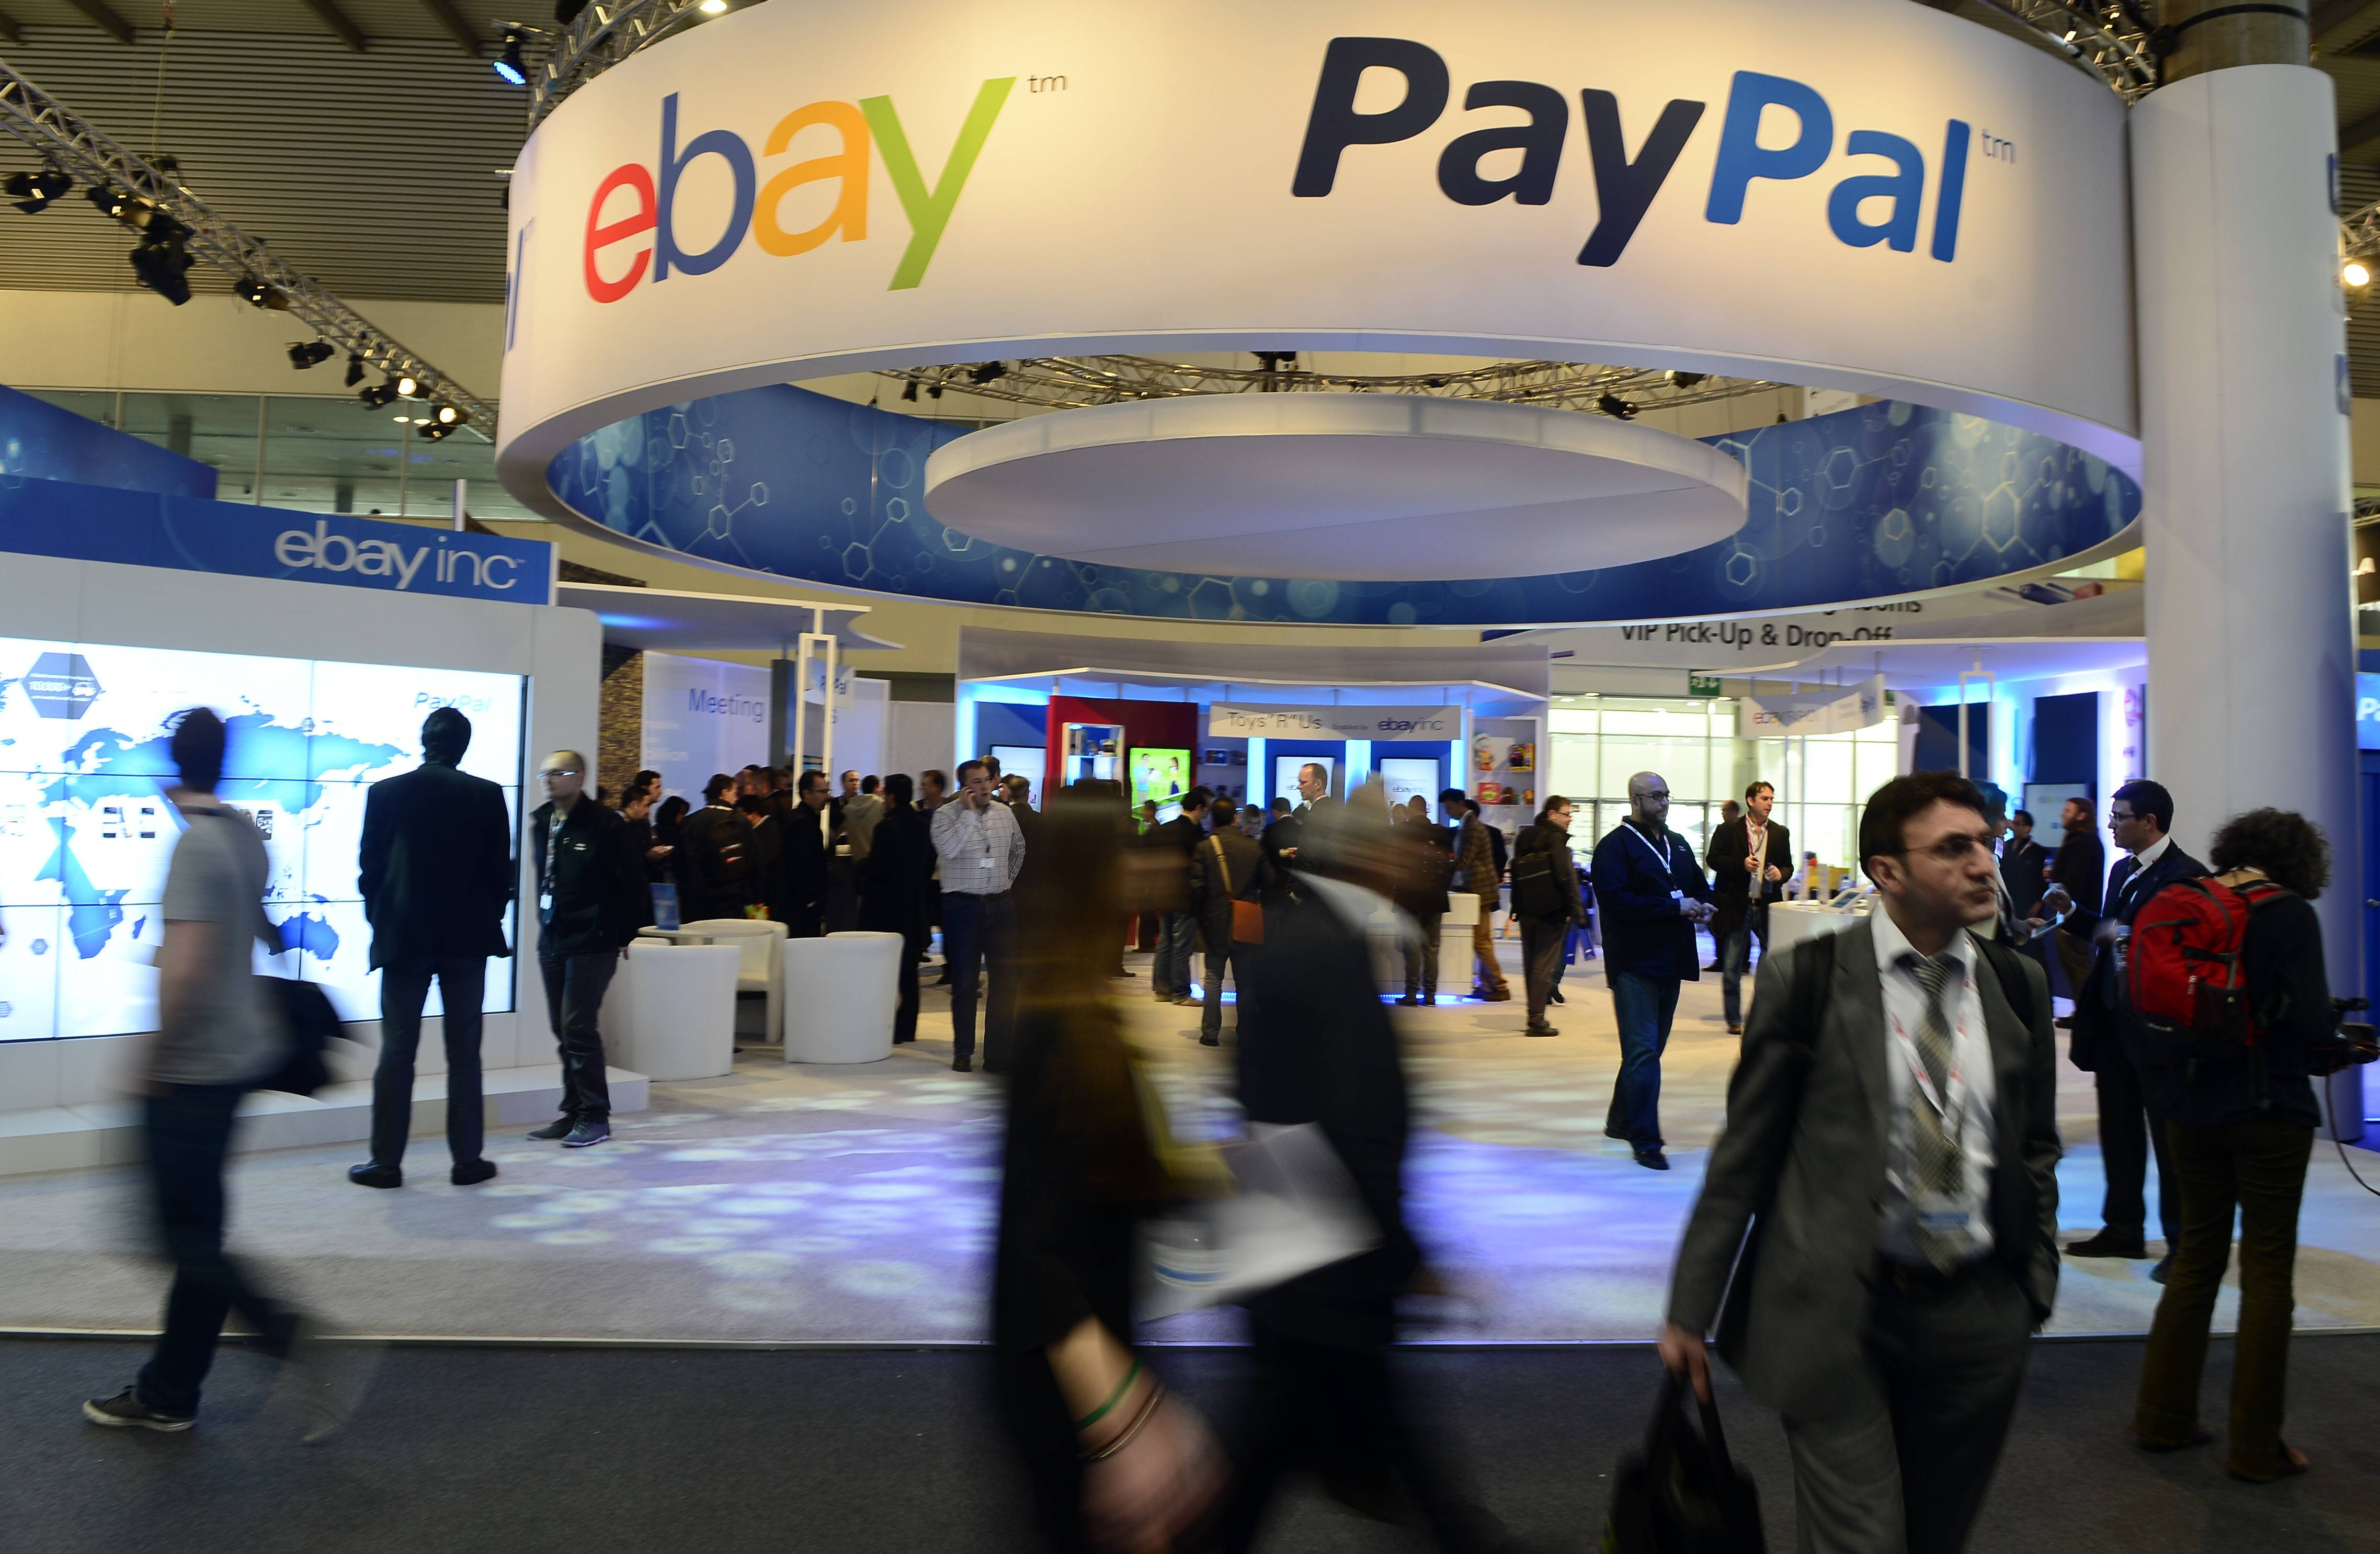 PayPal is splitting from EBay Inc. and will become a separate and publicly traded company during the second half of 2015.